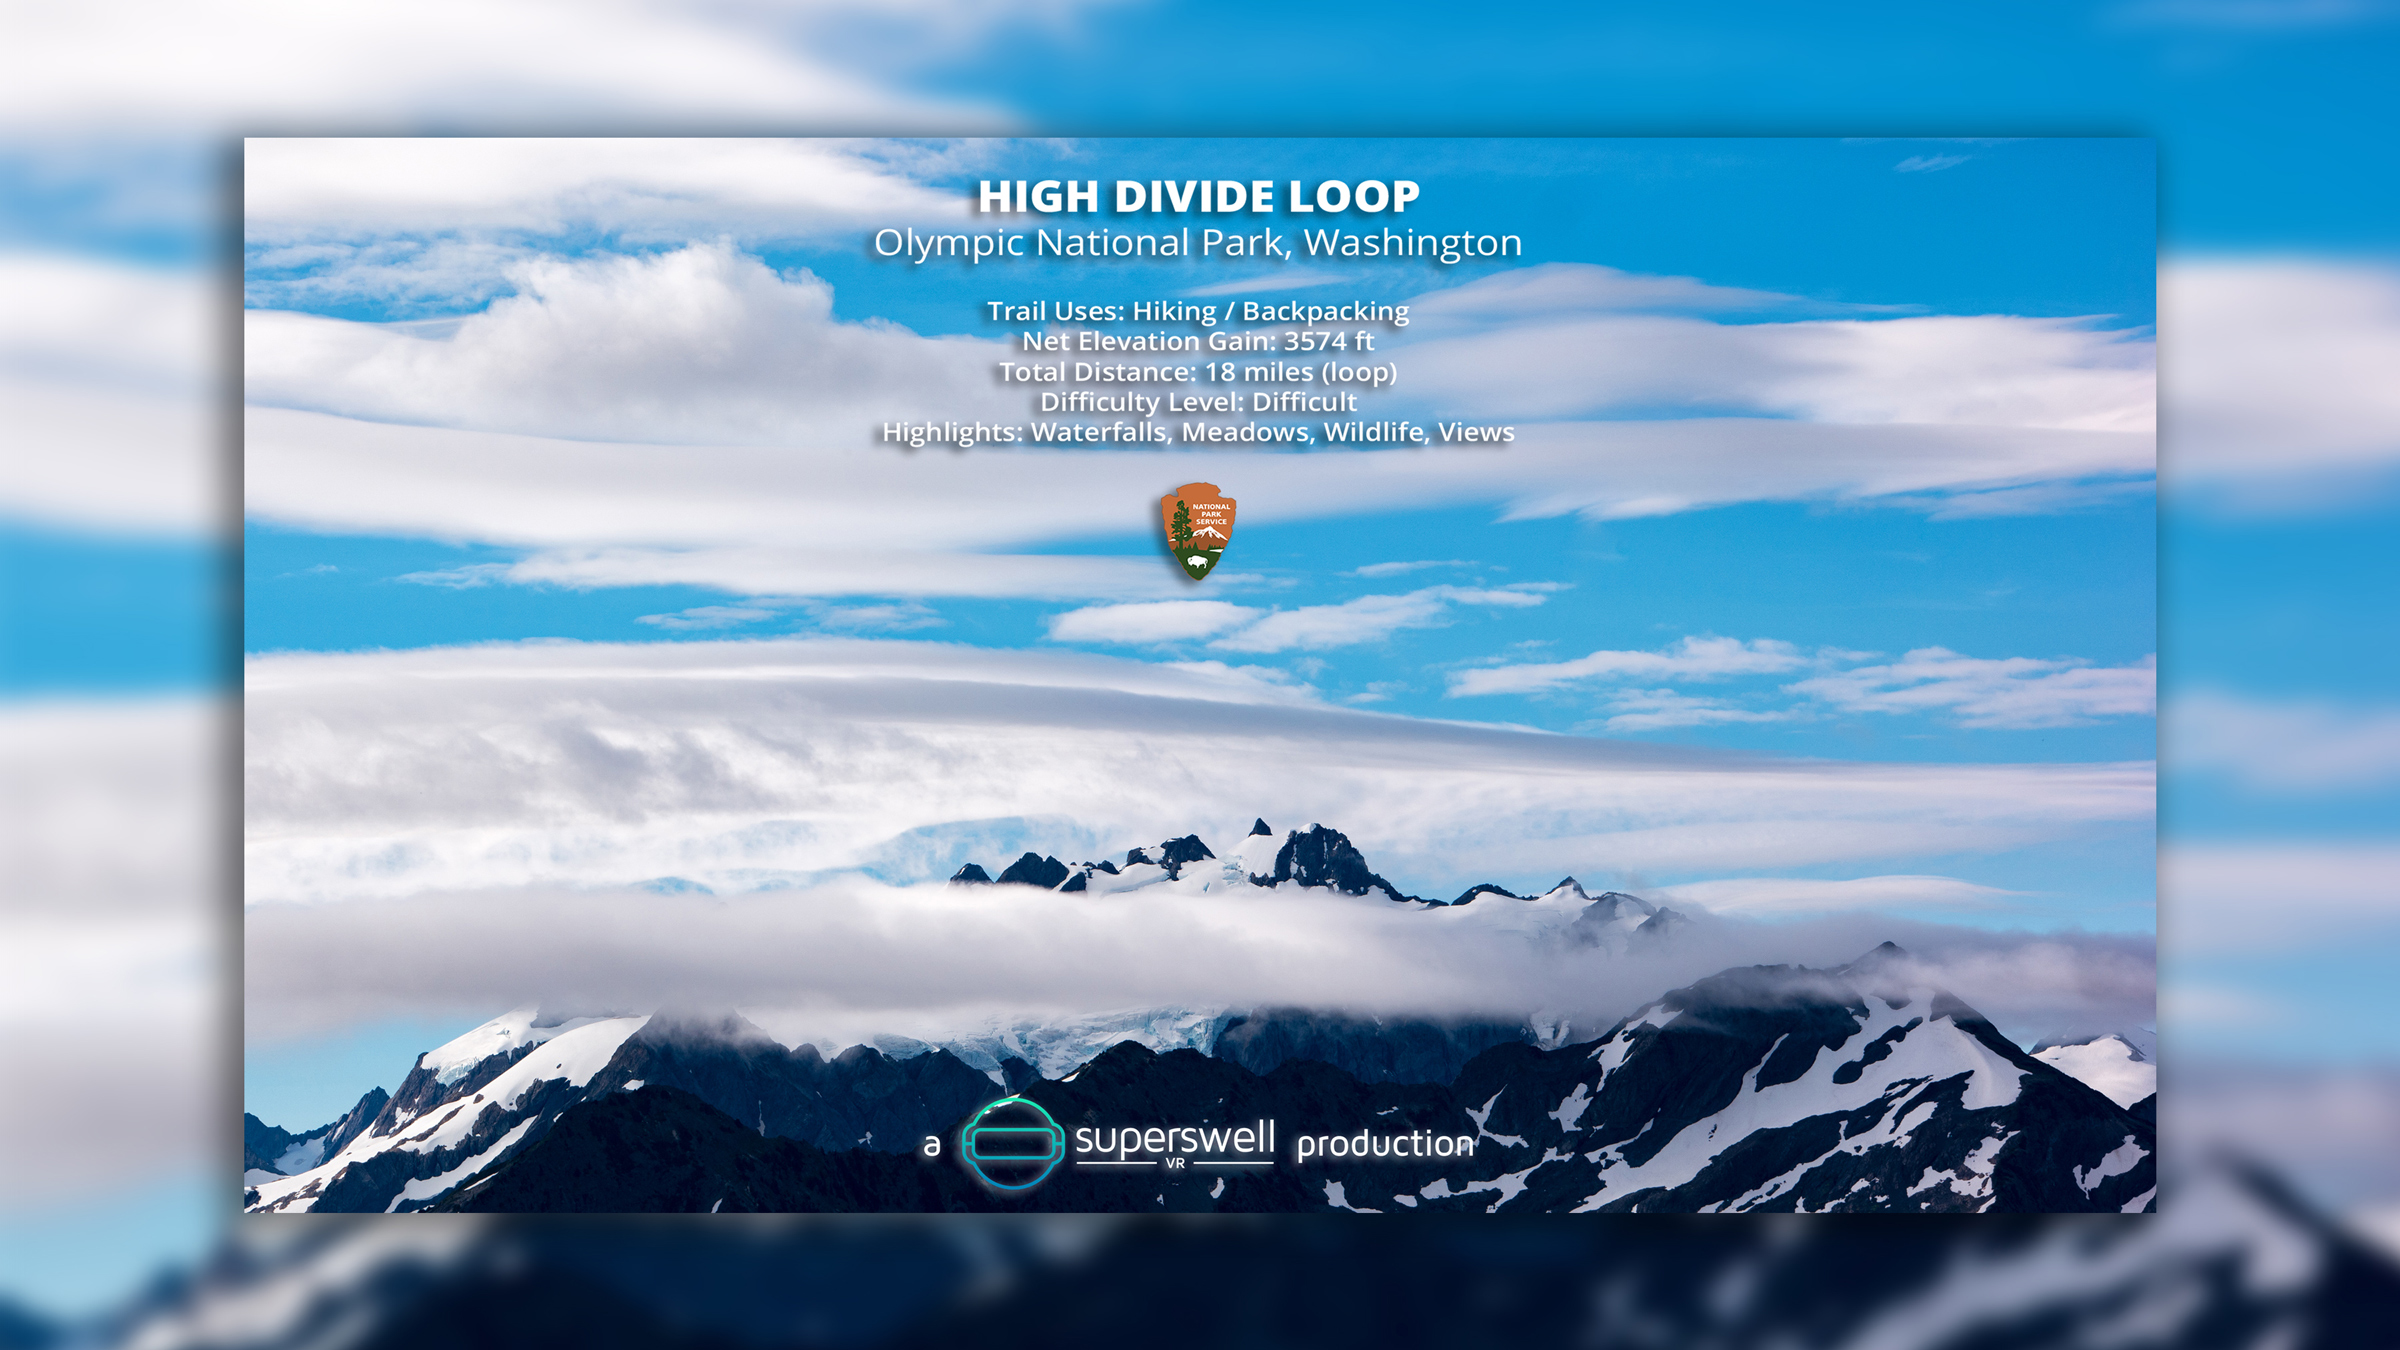 superswell-VR_Olympic-National-Park_High-Divide-Loop_Title-Card-v2_2400px.jpg